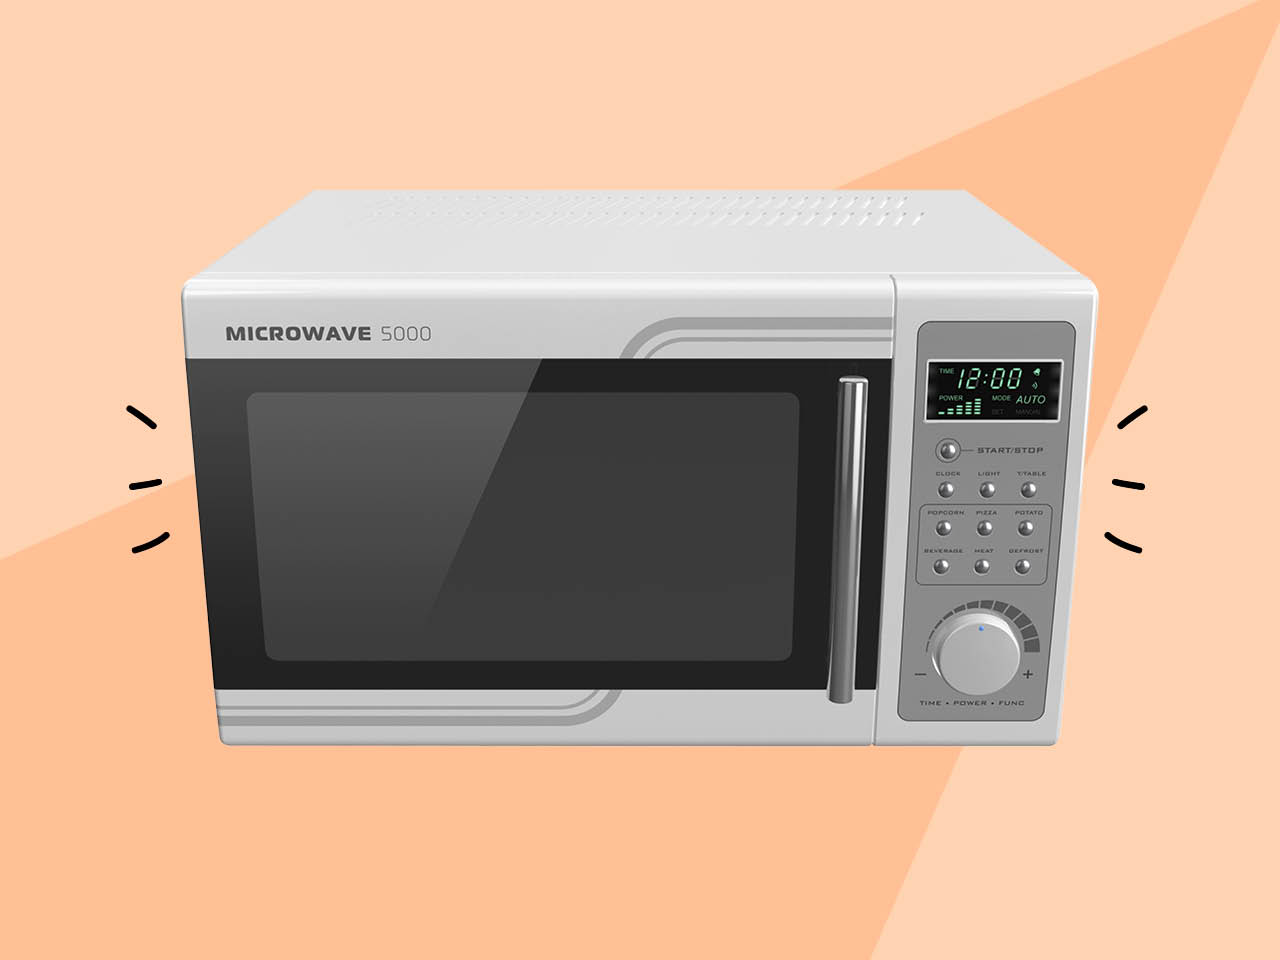 microwave cooking: it does more than reheat leftovers